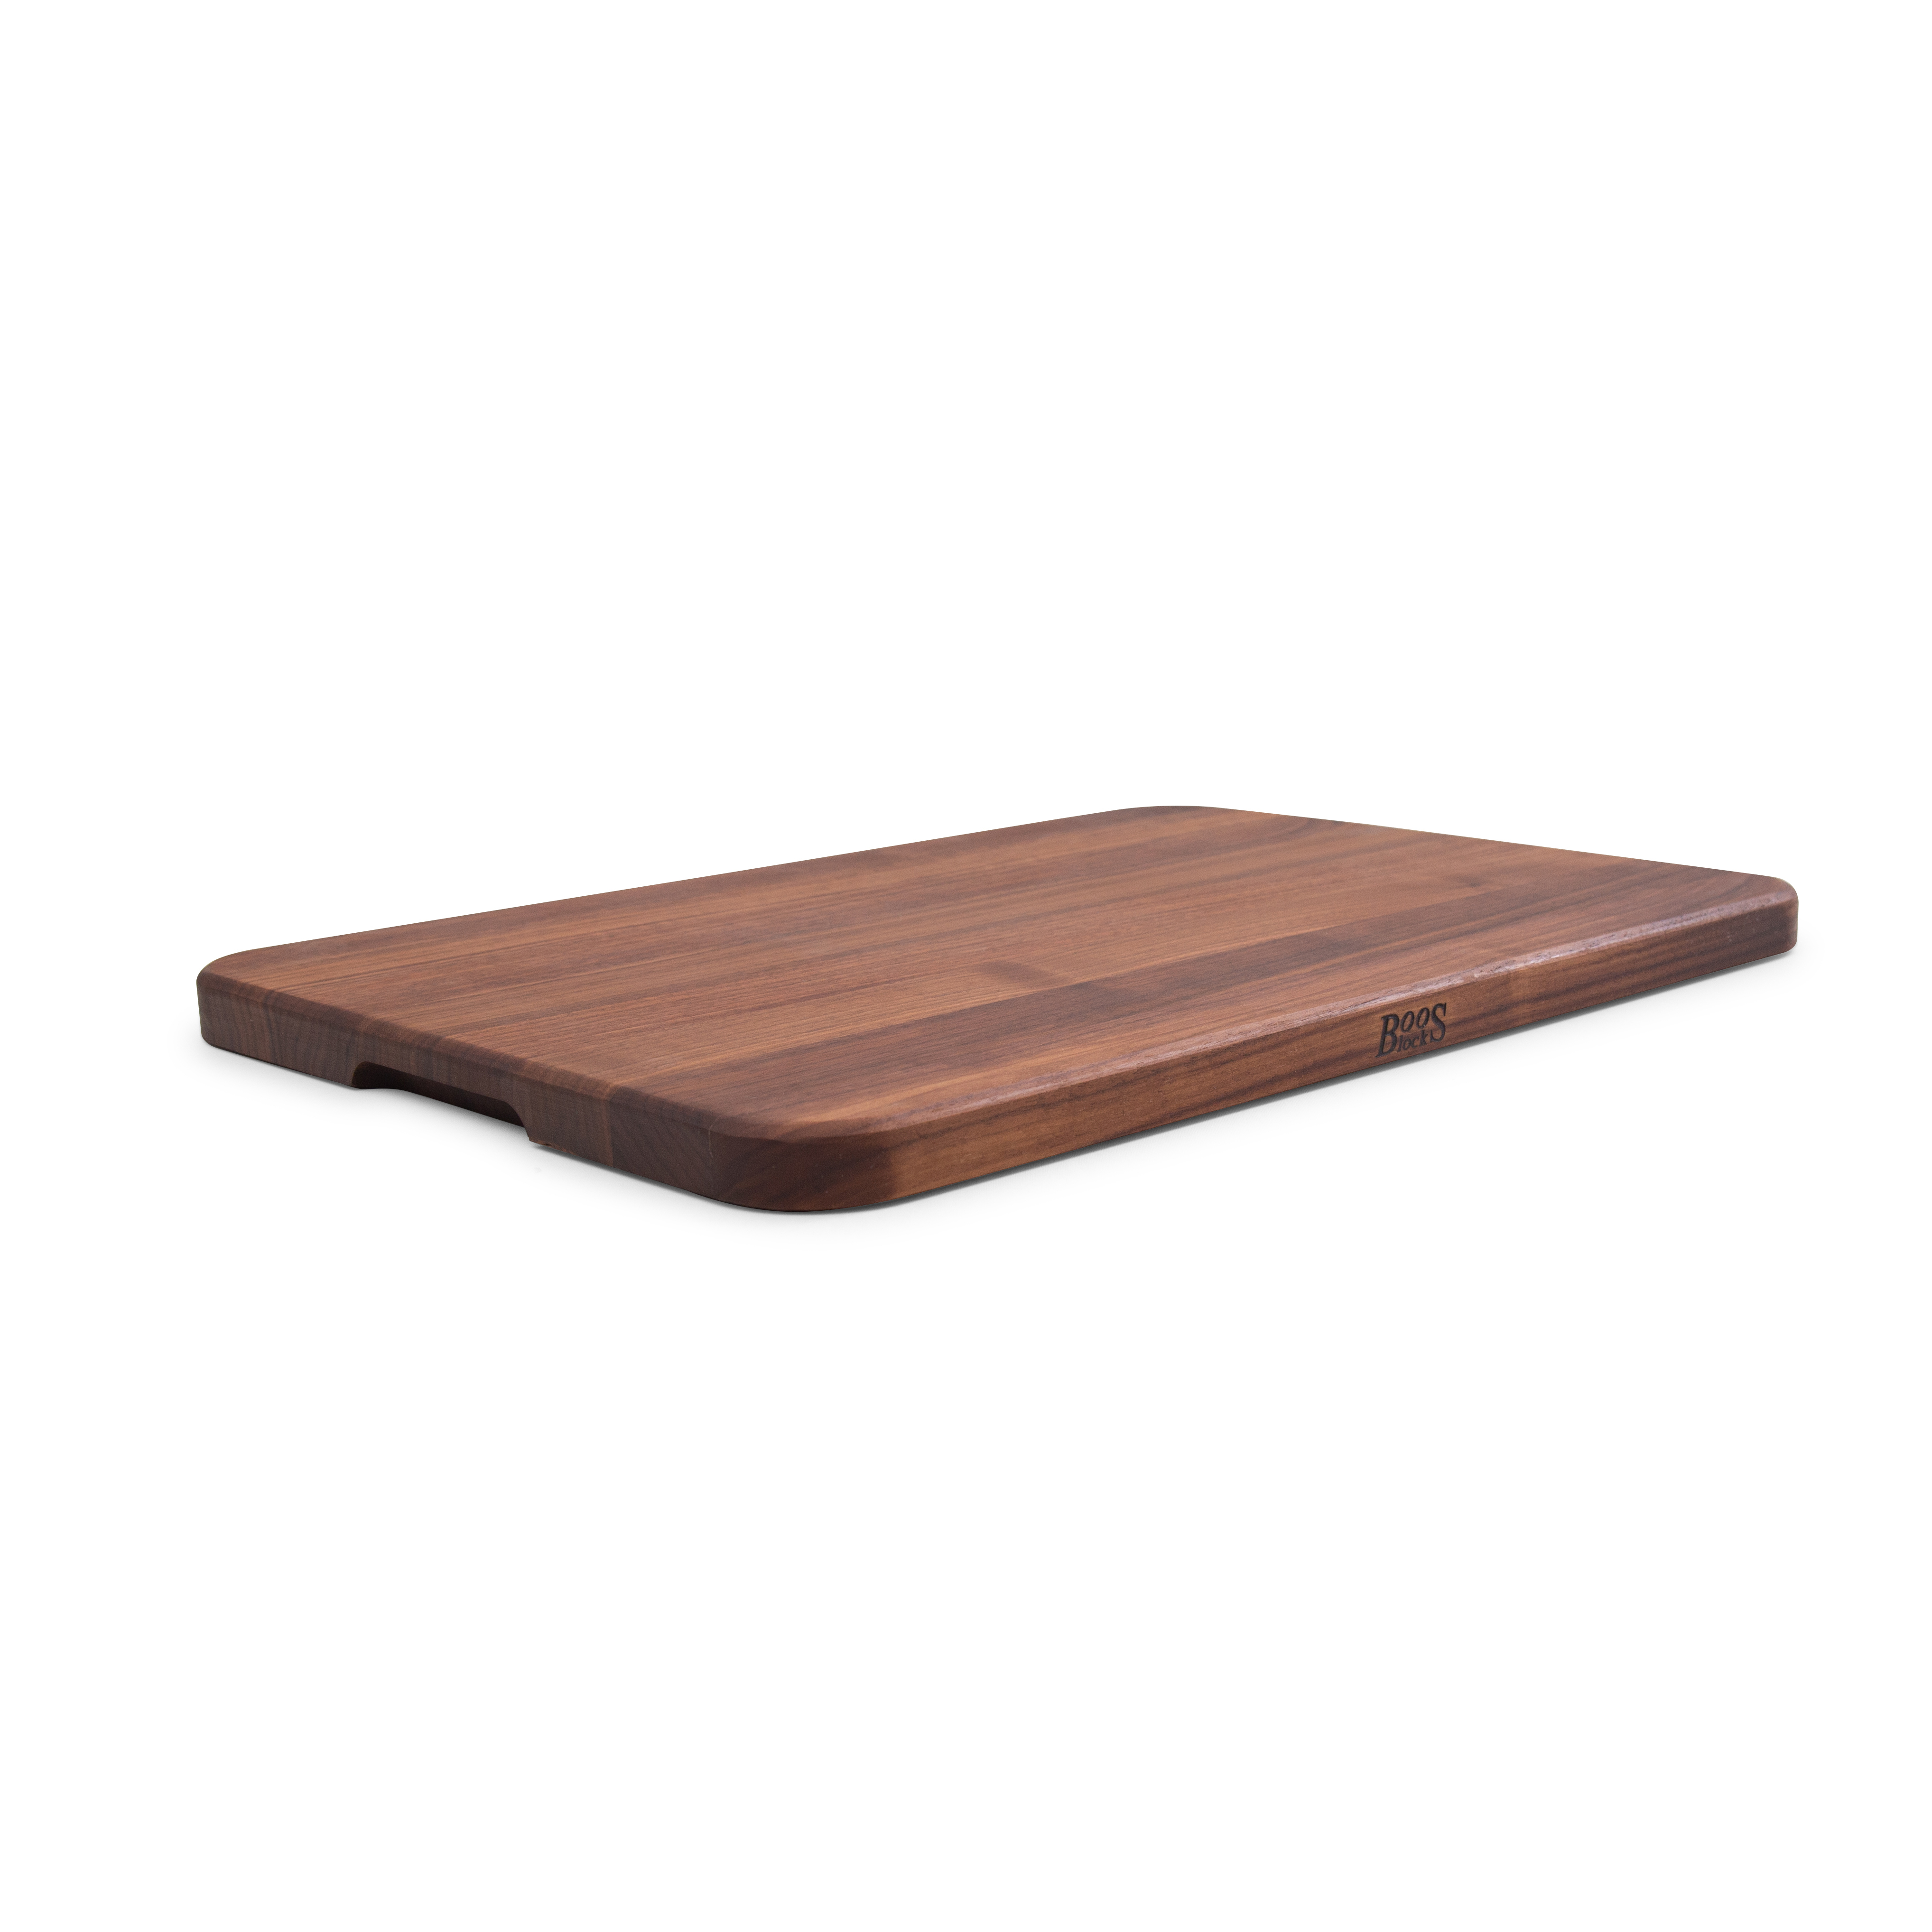 John Boos CB4C-W201401 cutting board, wood